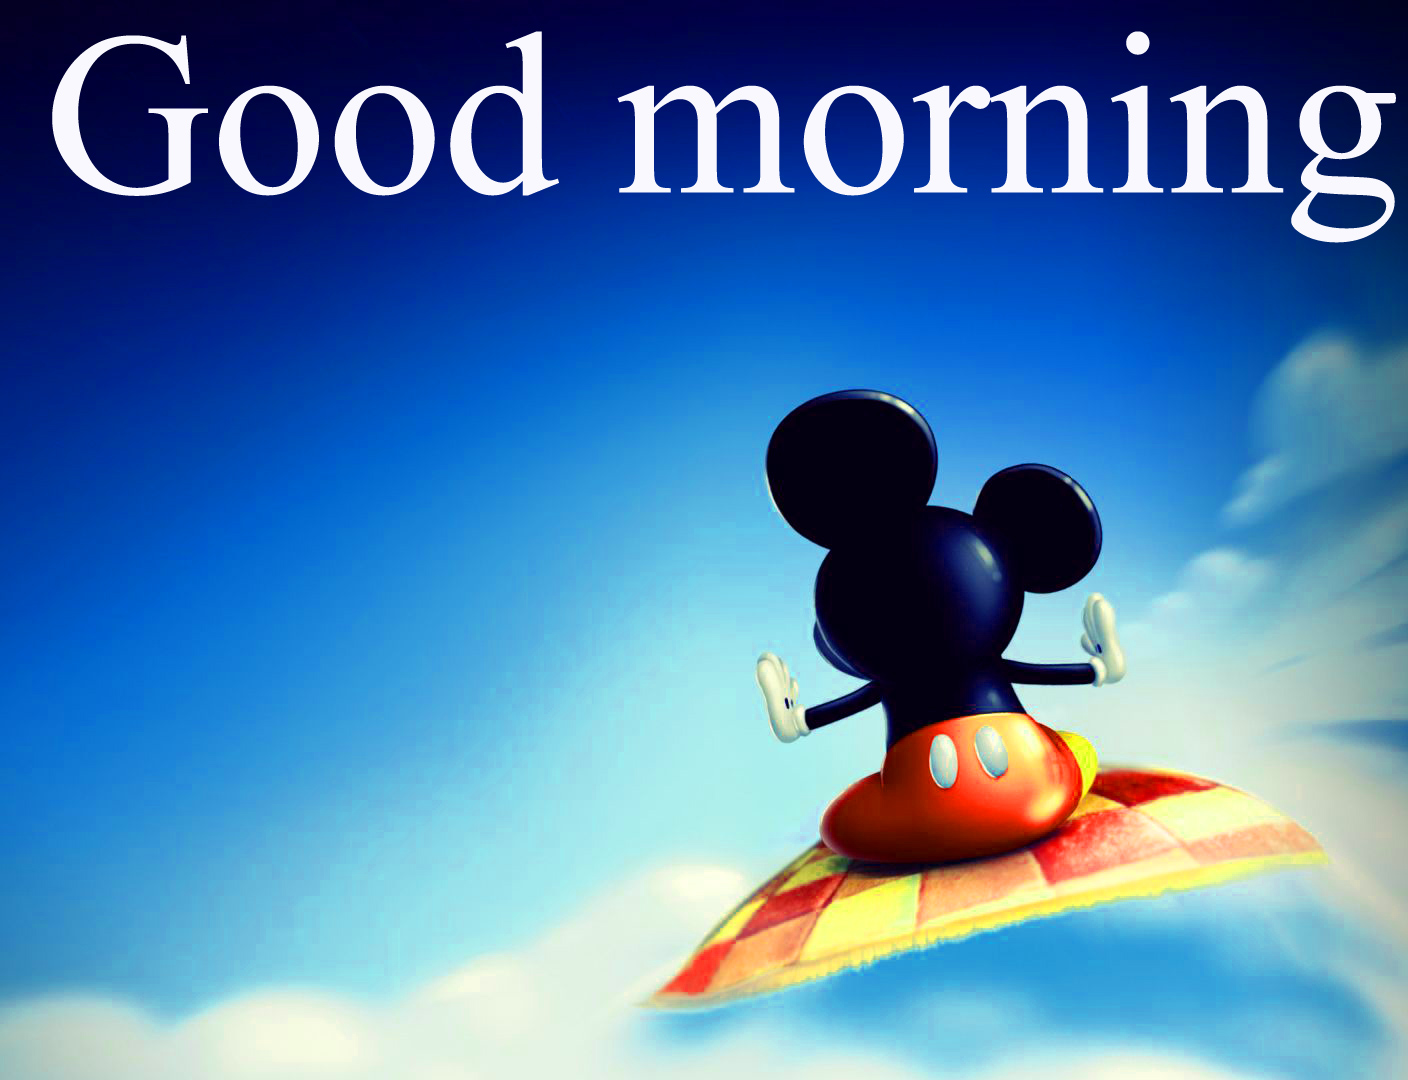 Good morning  wishes with mickey Images Photo Wallpaper Free Download